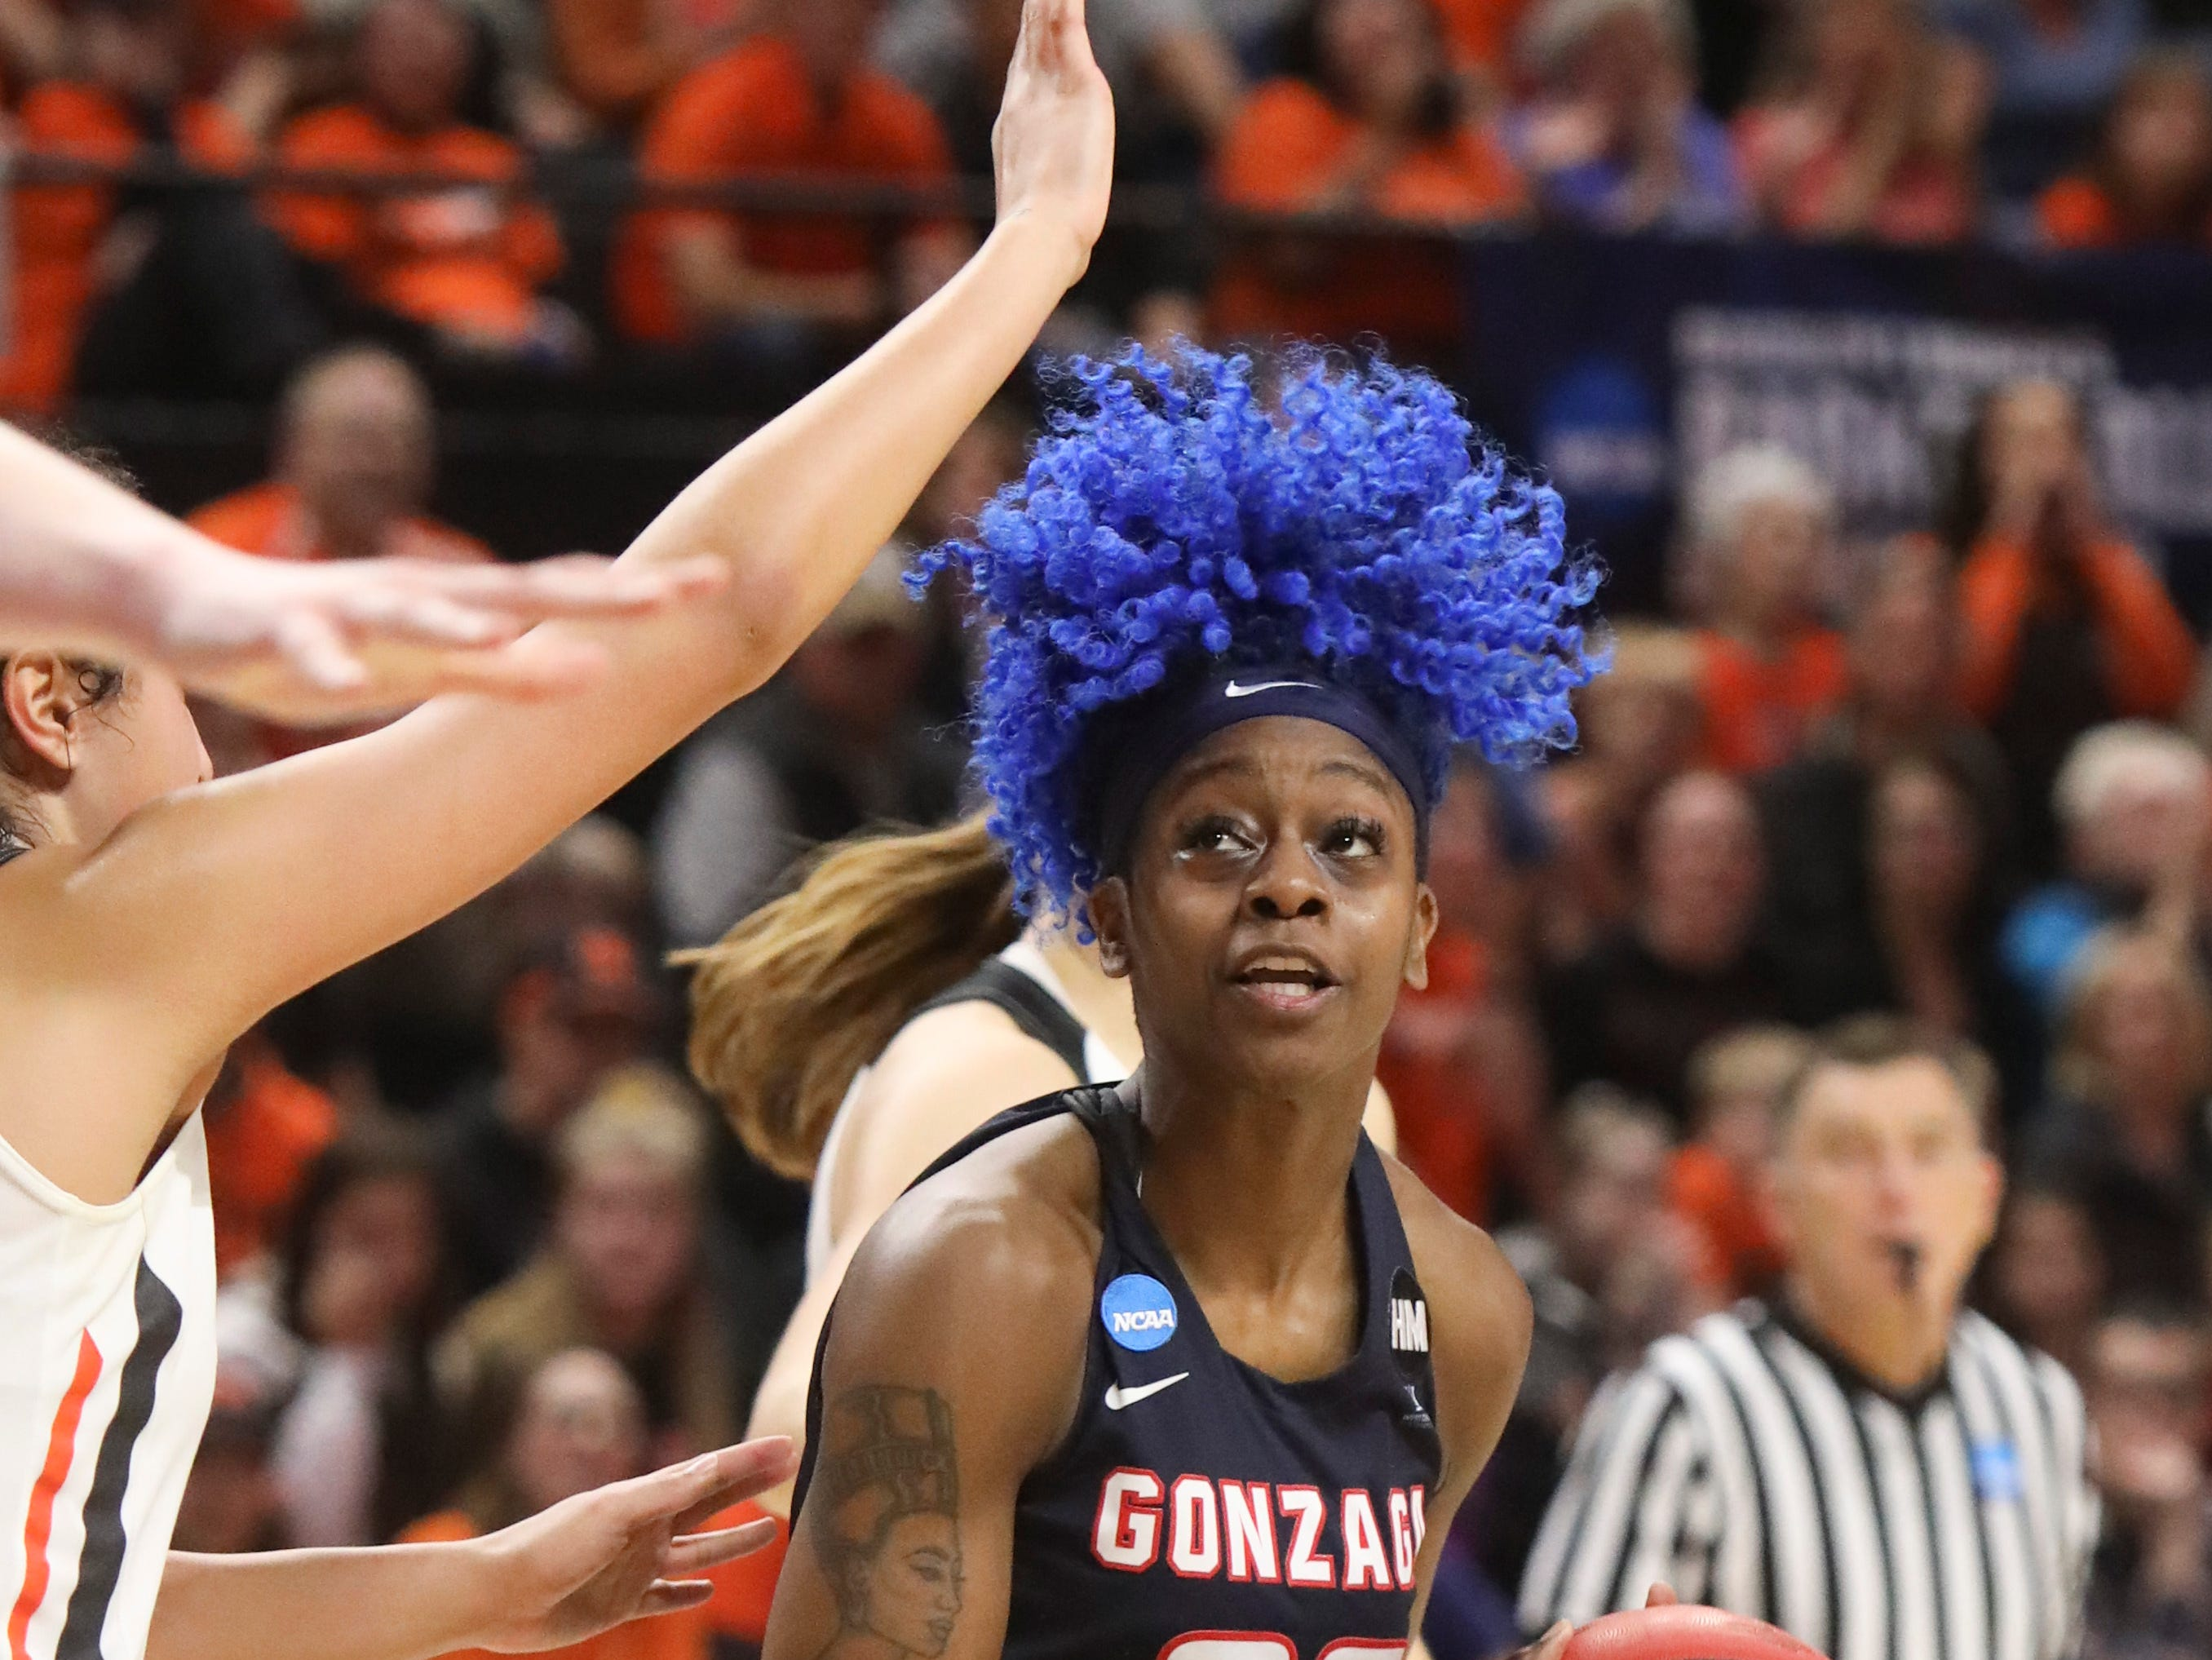 Gonzaga's Zykera Rice (00) looks for a path to the basket past Oregon State's Taya Corosdale (5) during the second half of a second-round game of the NCAA women's college basketball tournament against Oregon State in Corvallis, Ore., Monday, March 25, 2019. Oregon State won 76-70. (AP Photo/Amanda Loman)